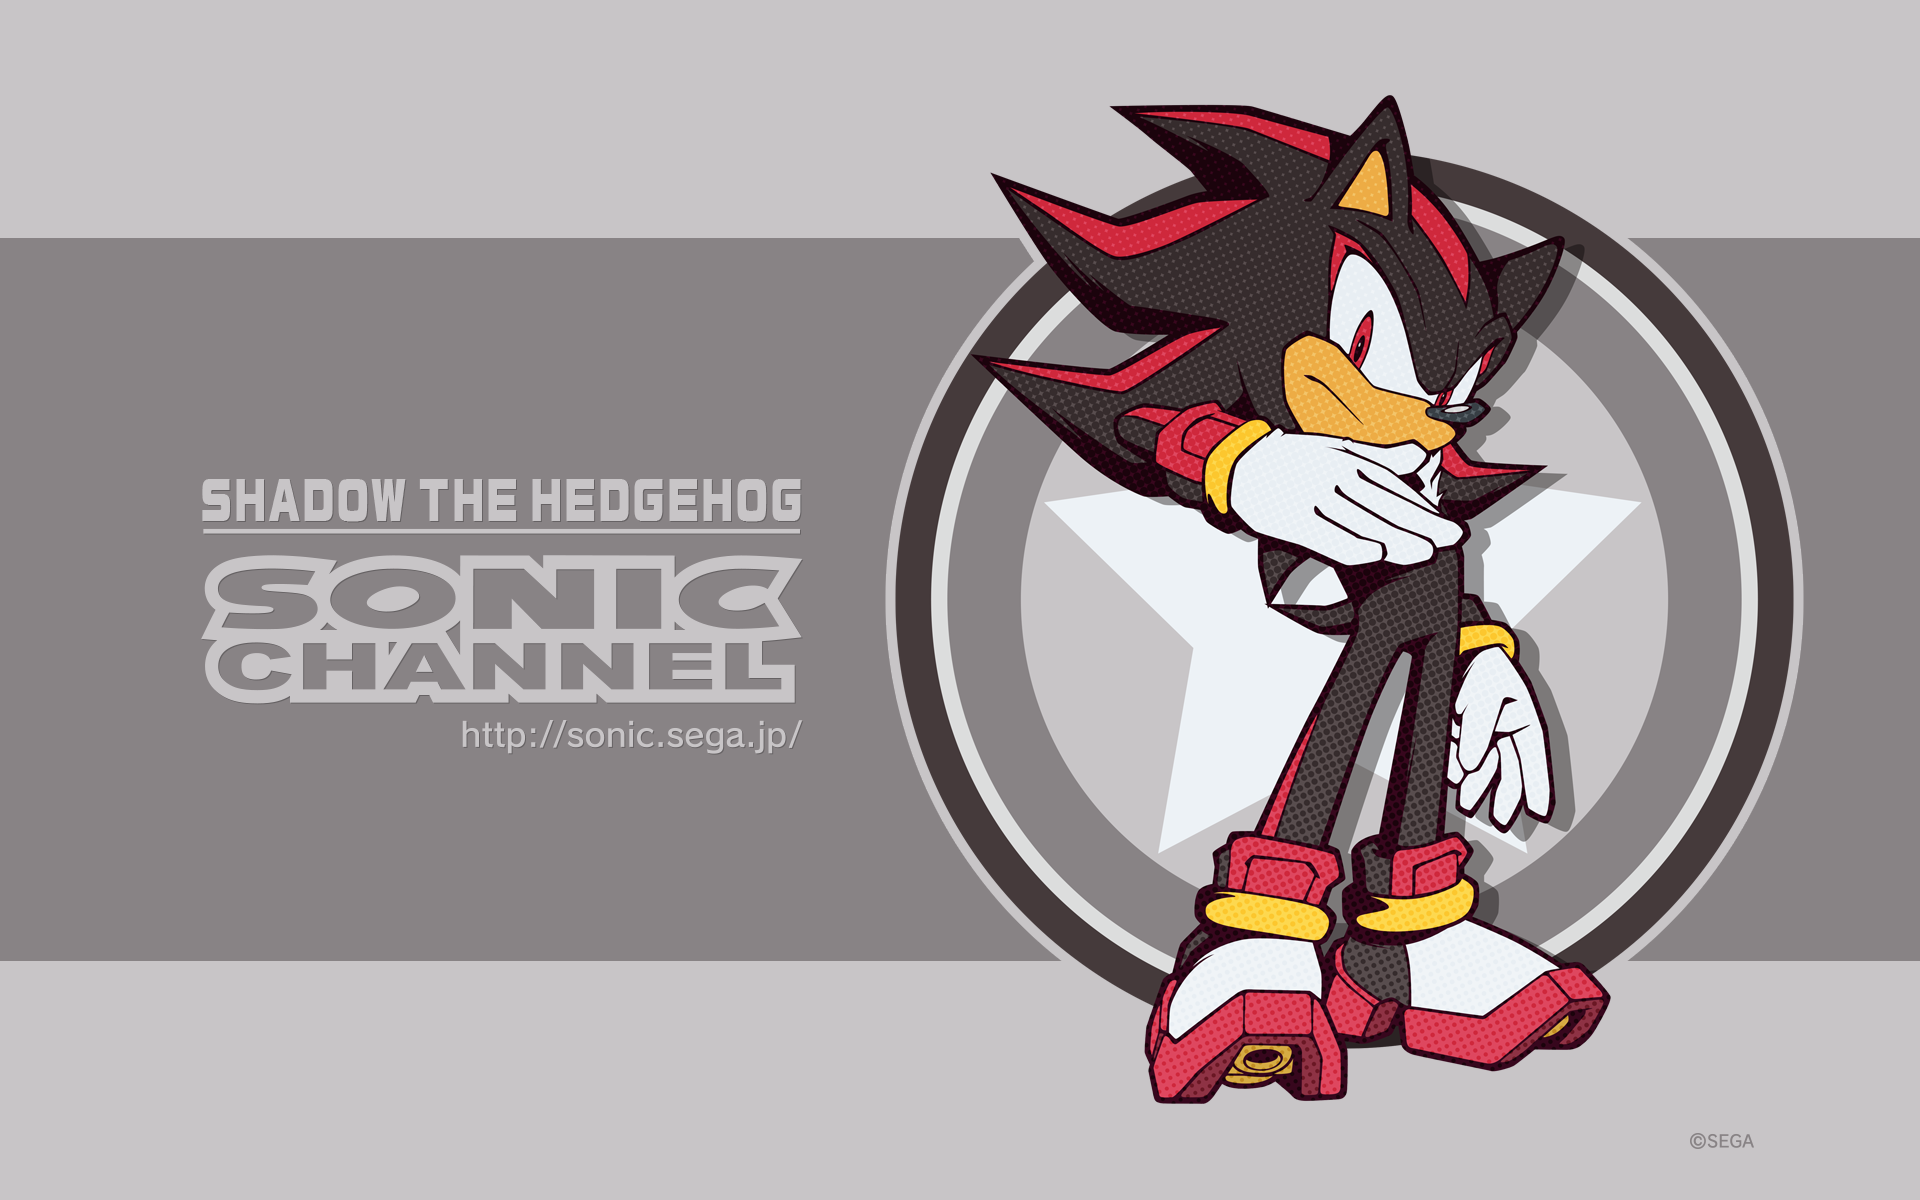 http://sonic.sega.jp/SonicChannel/enjoy/image/wallpaper_159_shadow_13_pc.png